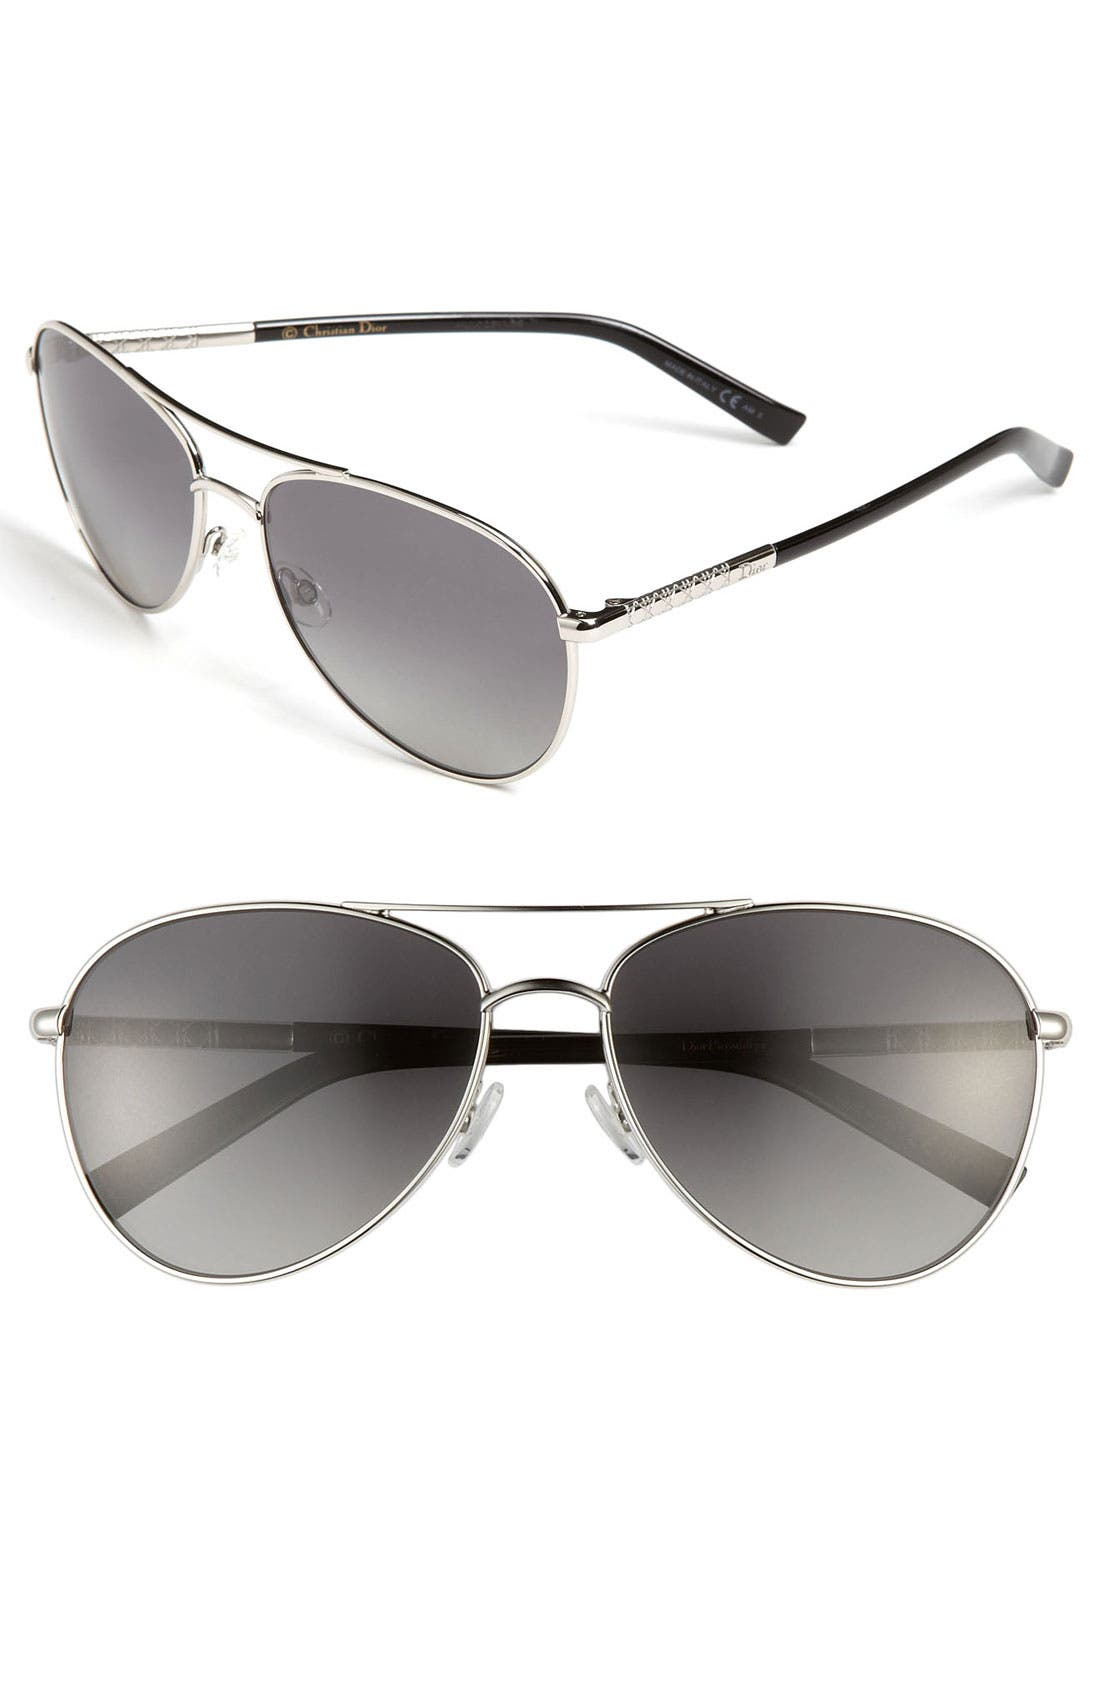 Main Image - Dior 'Picadilly 2' 59mm Polarized Metal Aviator Sunglasses